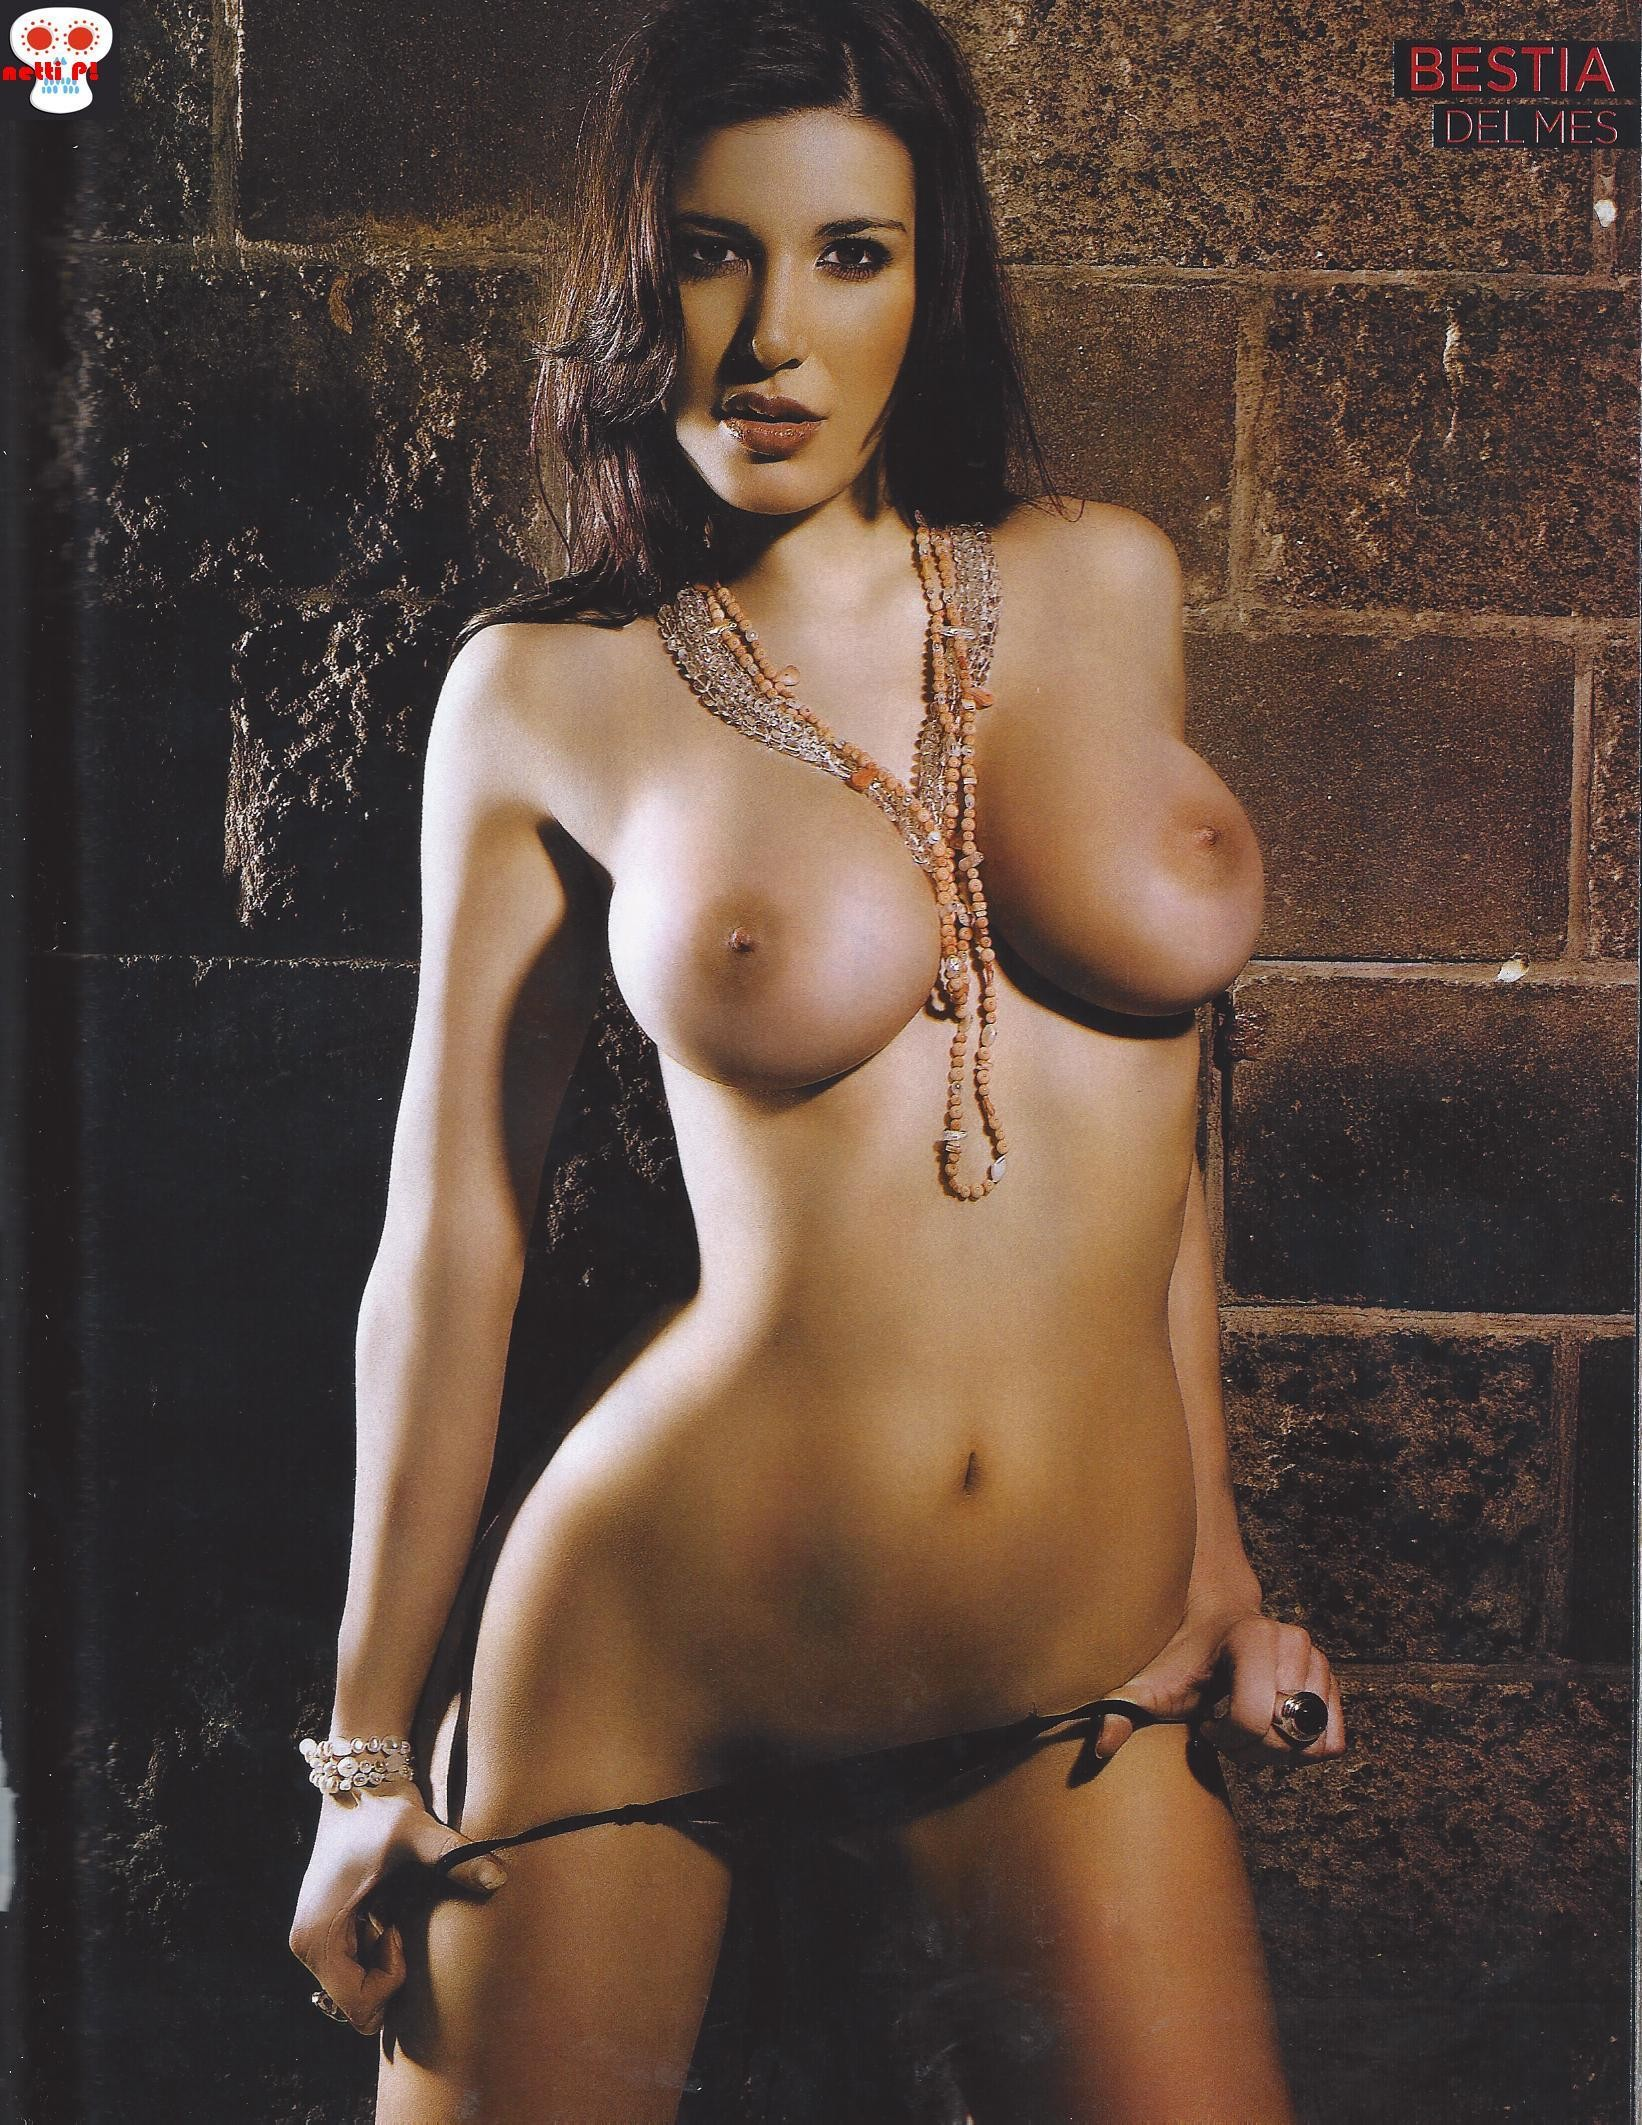 Andrea rincon naked pictures